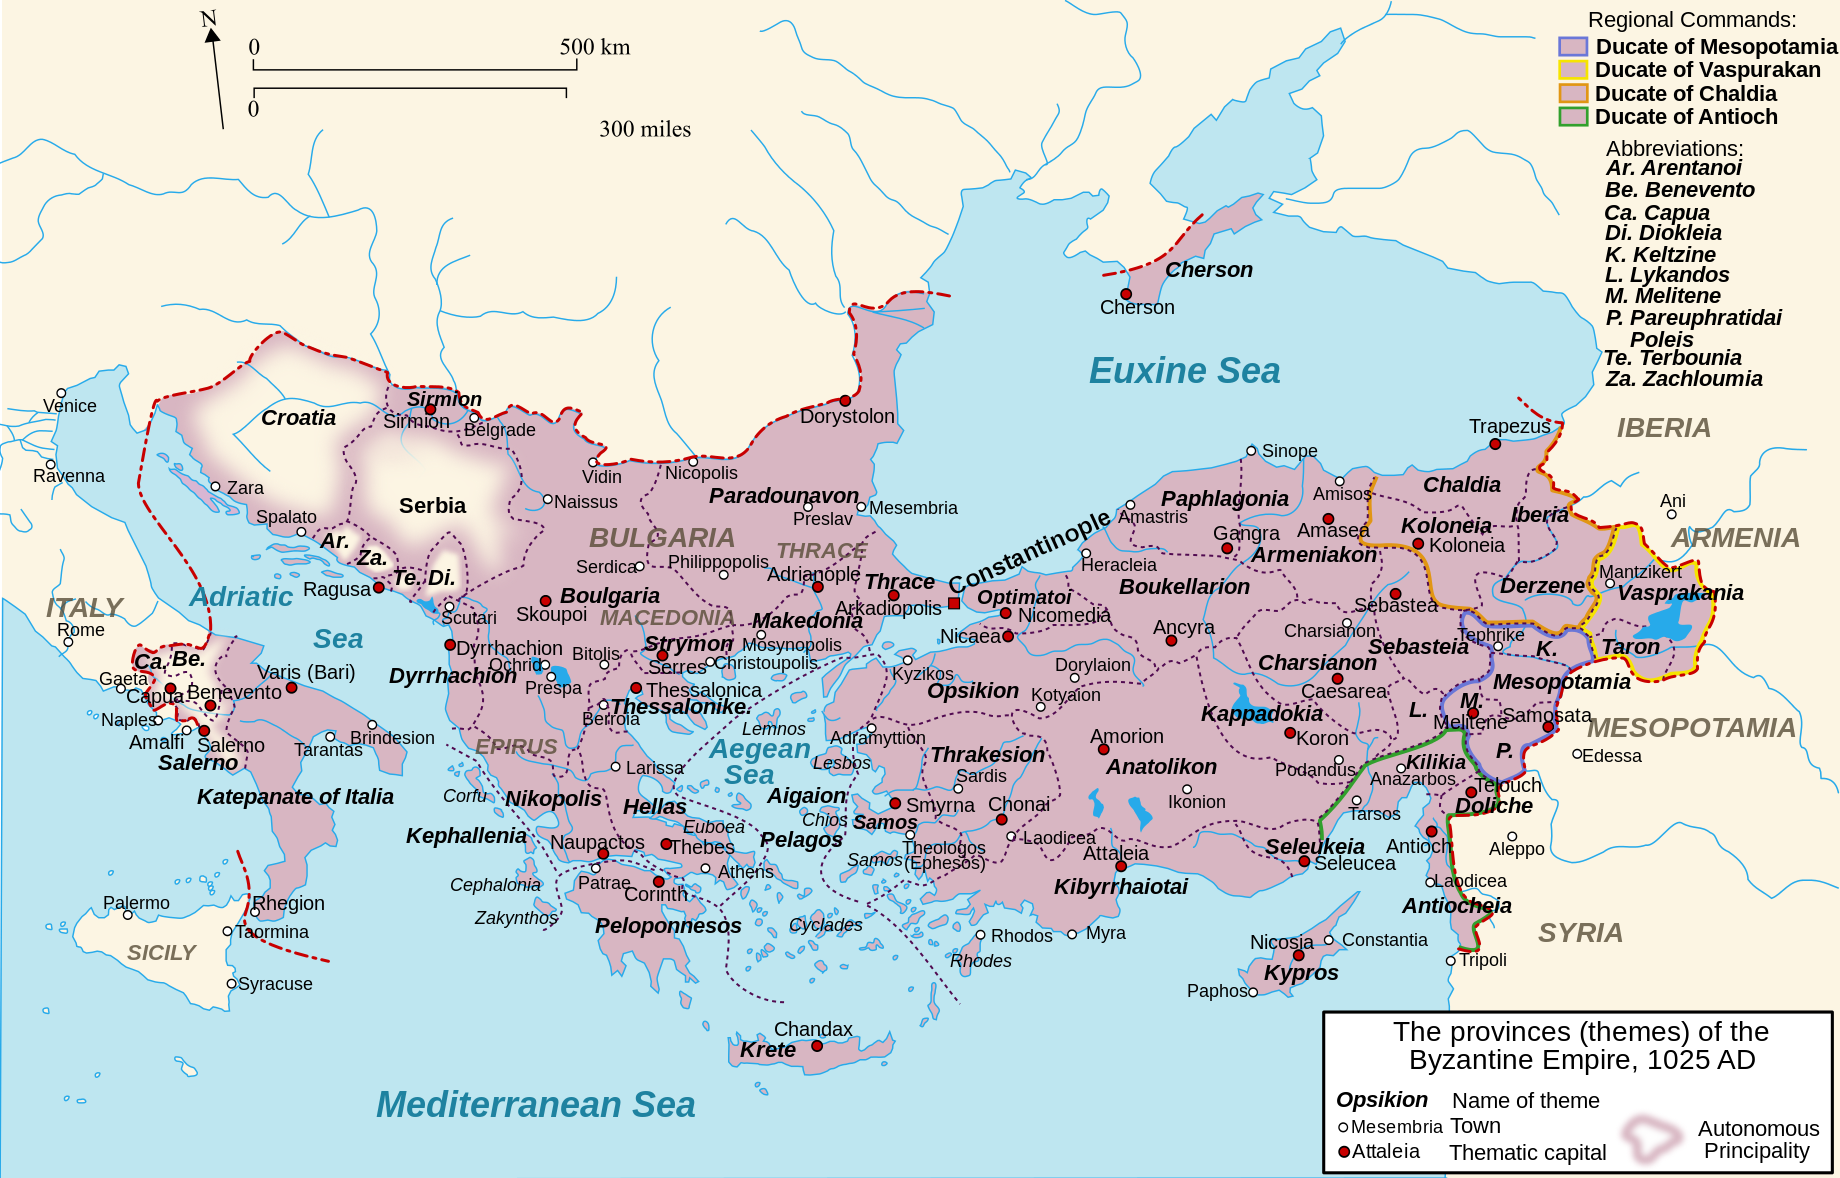 Byzantine_Empire_Themes_1025-en_svg.png